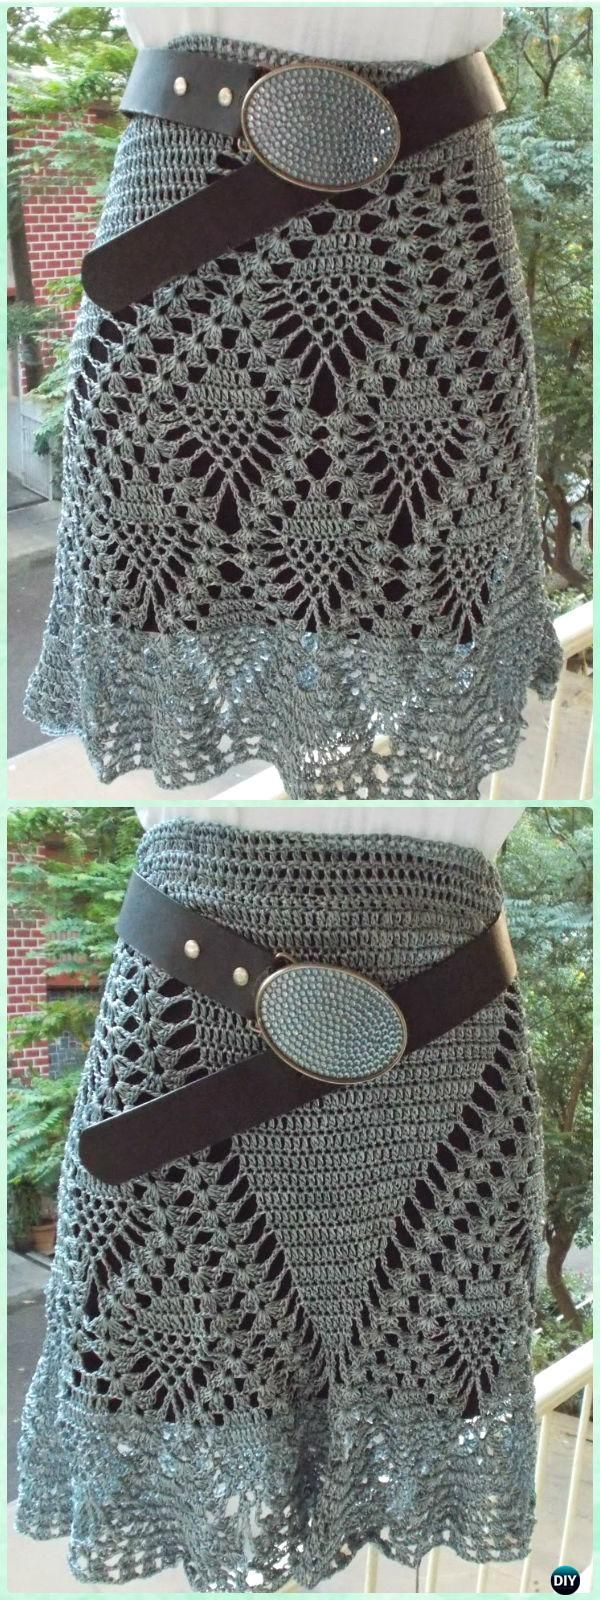 Crochet Pineapple Skirt Free Pattern - Crochet Women Skirt Free Pattern